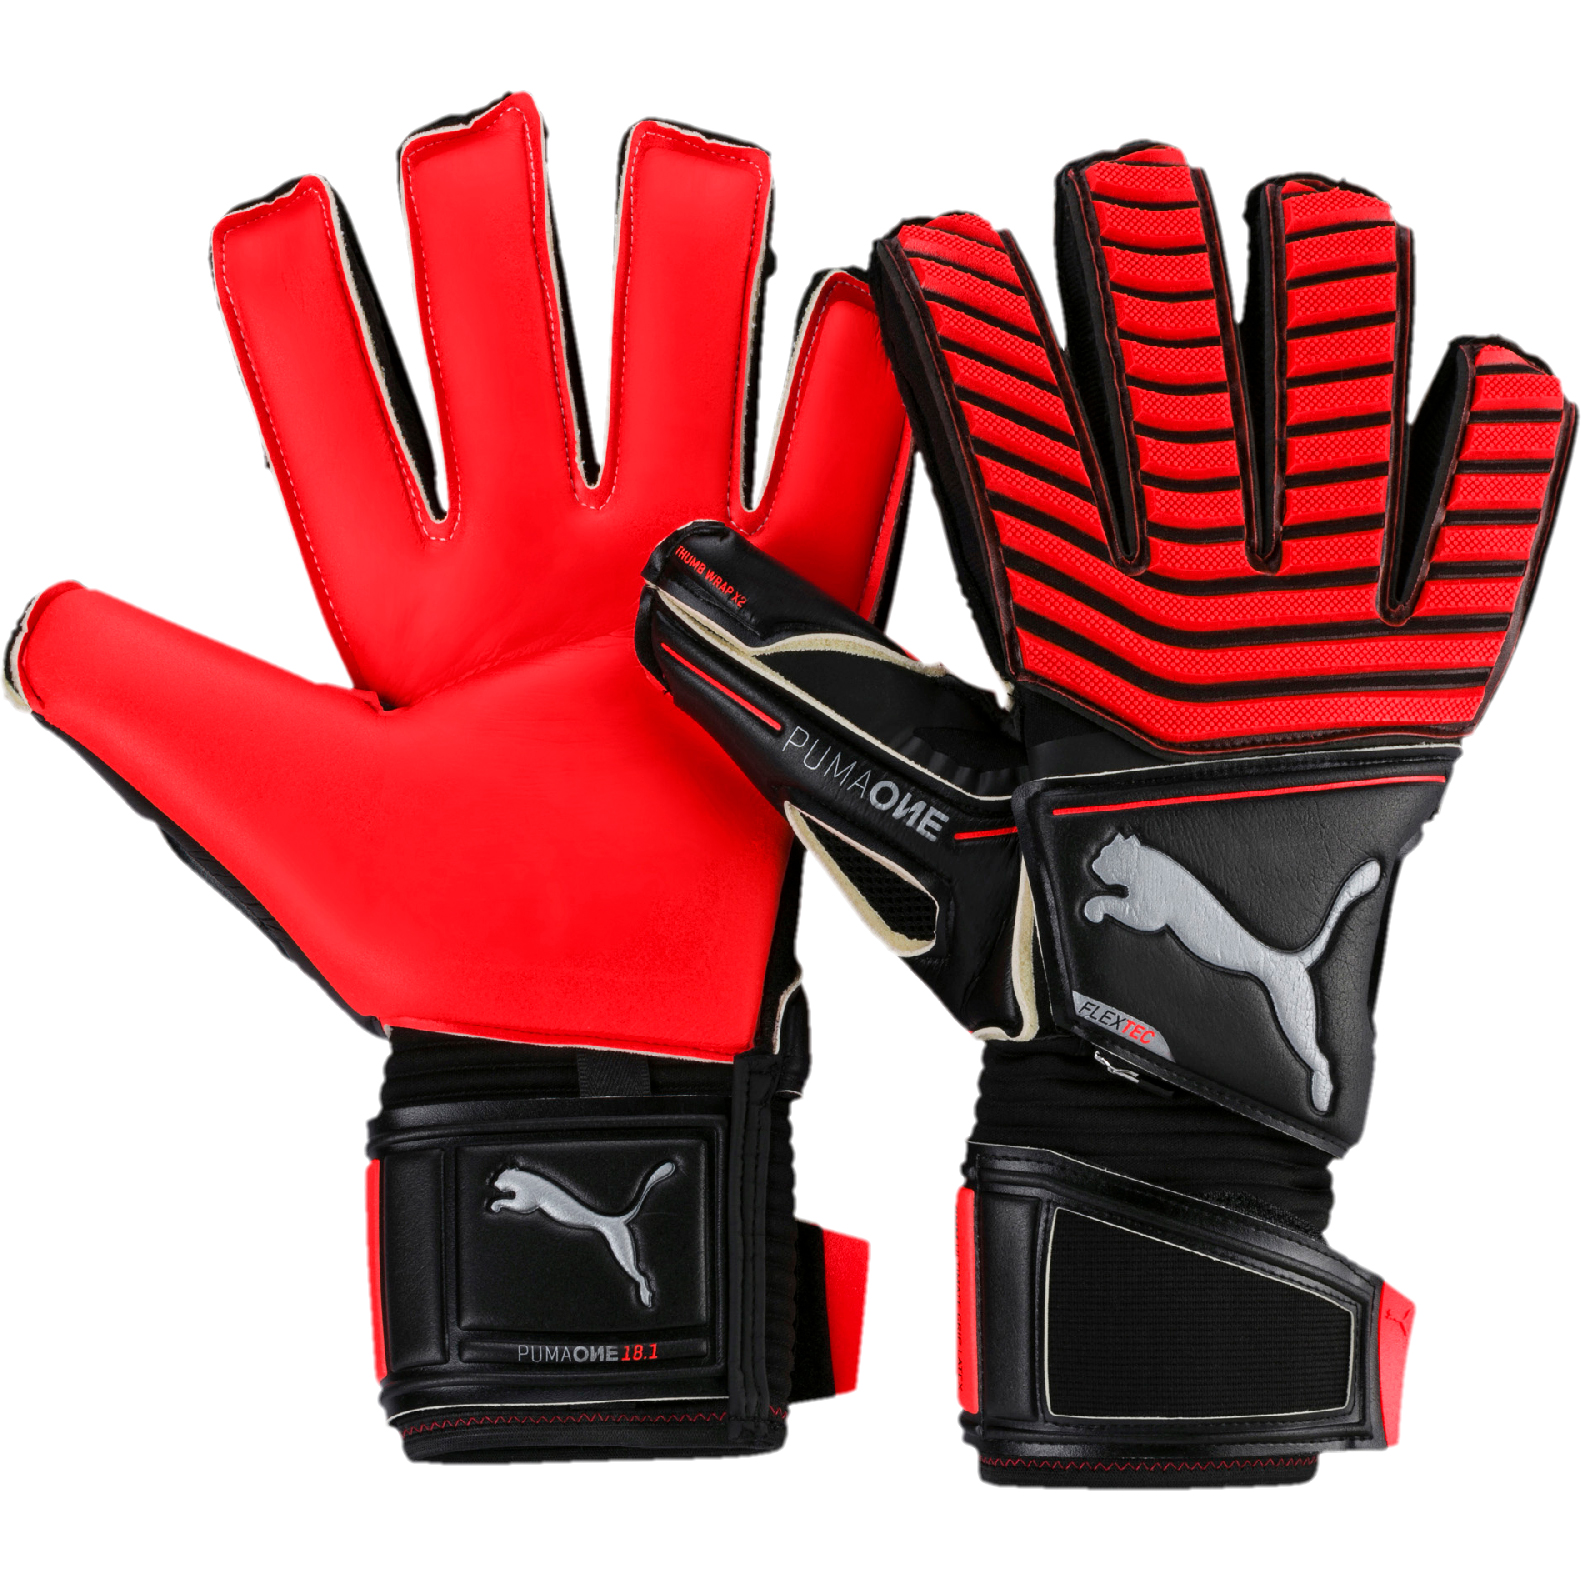 78a748f88 Details about PUMA One Protect 18.1 Goalkeeper Gloves Size